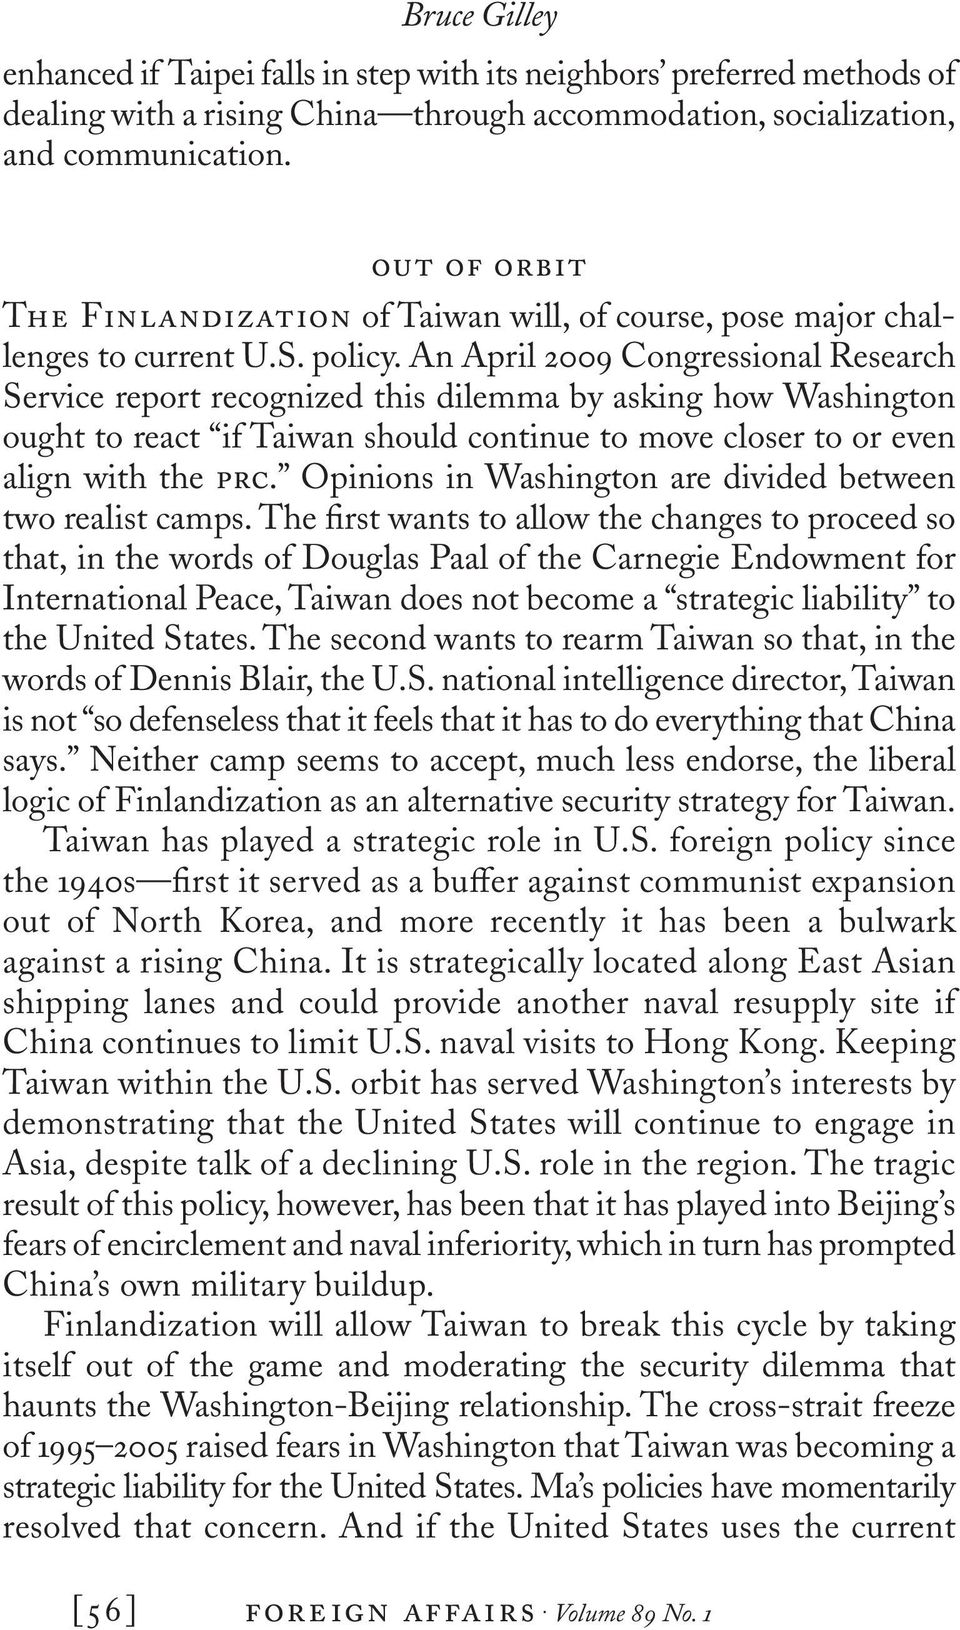 An April 2009 Congressional Research Service report recognized this dilemma by asking how Washington ought to react if Taiwan should continue to move closer to or even align with the prc.